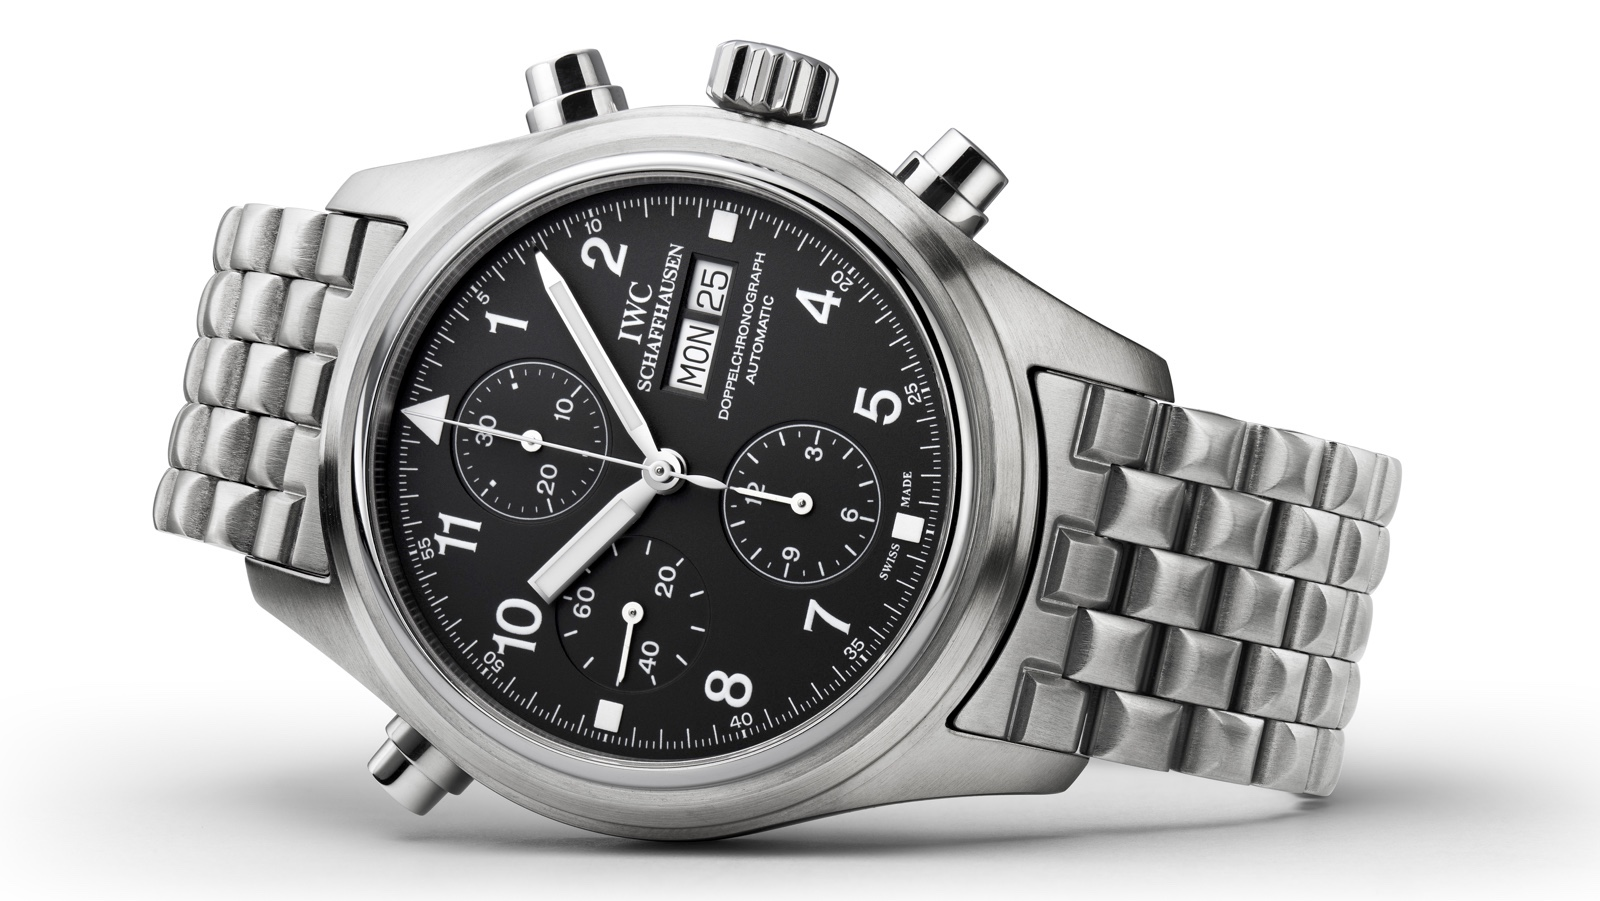 1992 IWC Pilots Watch Double Chronograph